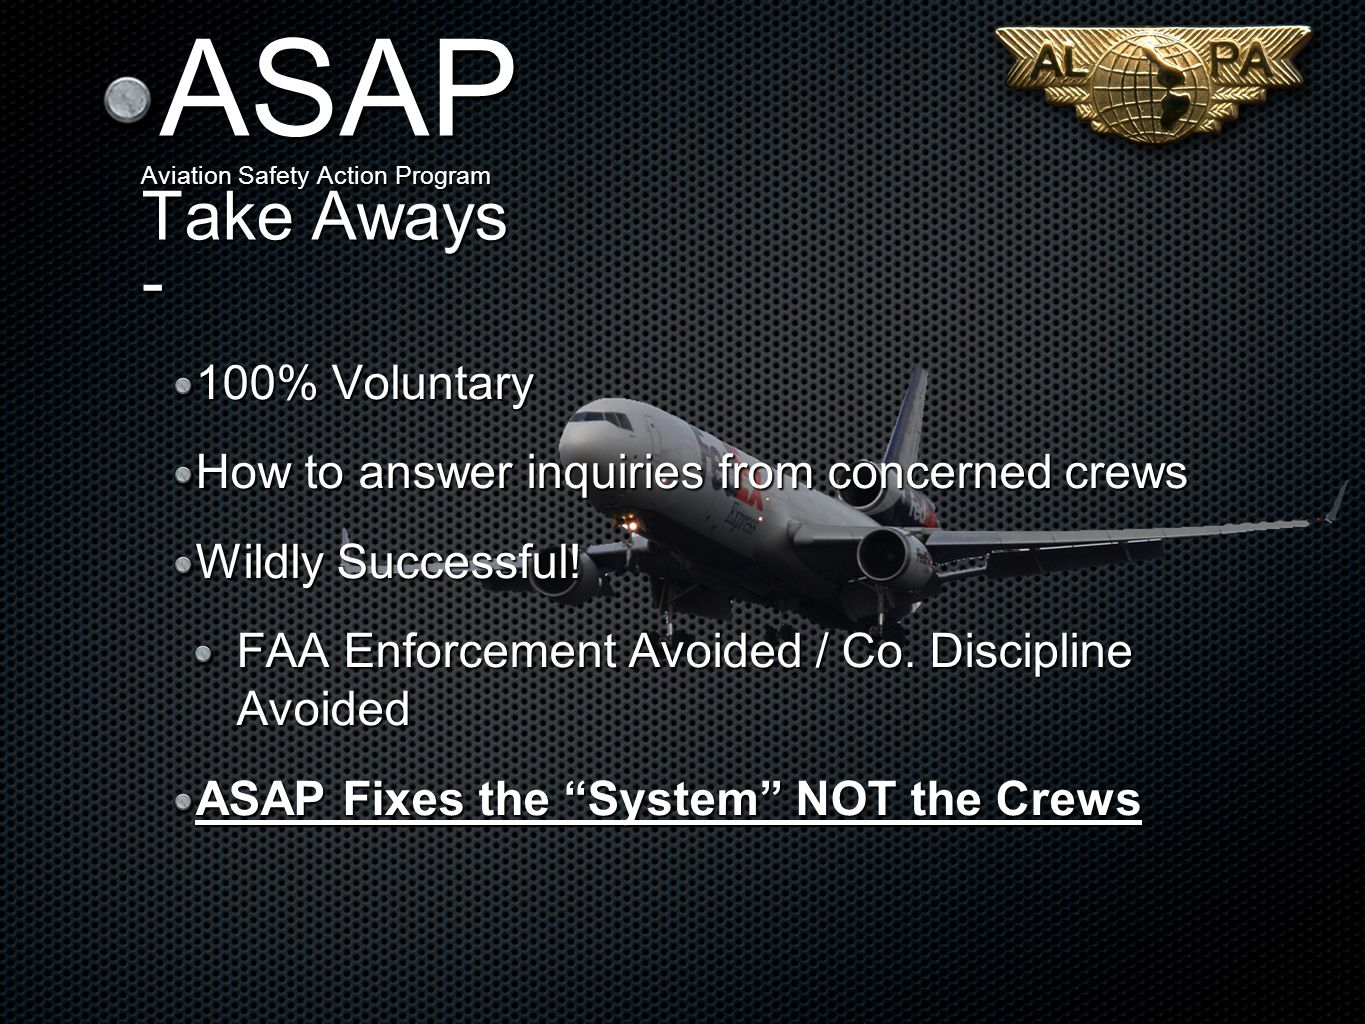 ASAP Aviation Safety Action Program Take Aways - 100% Voluntary How to answer inquiries from concerned crews Wildly Successful.